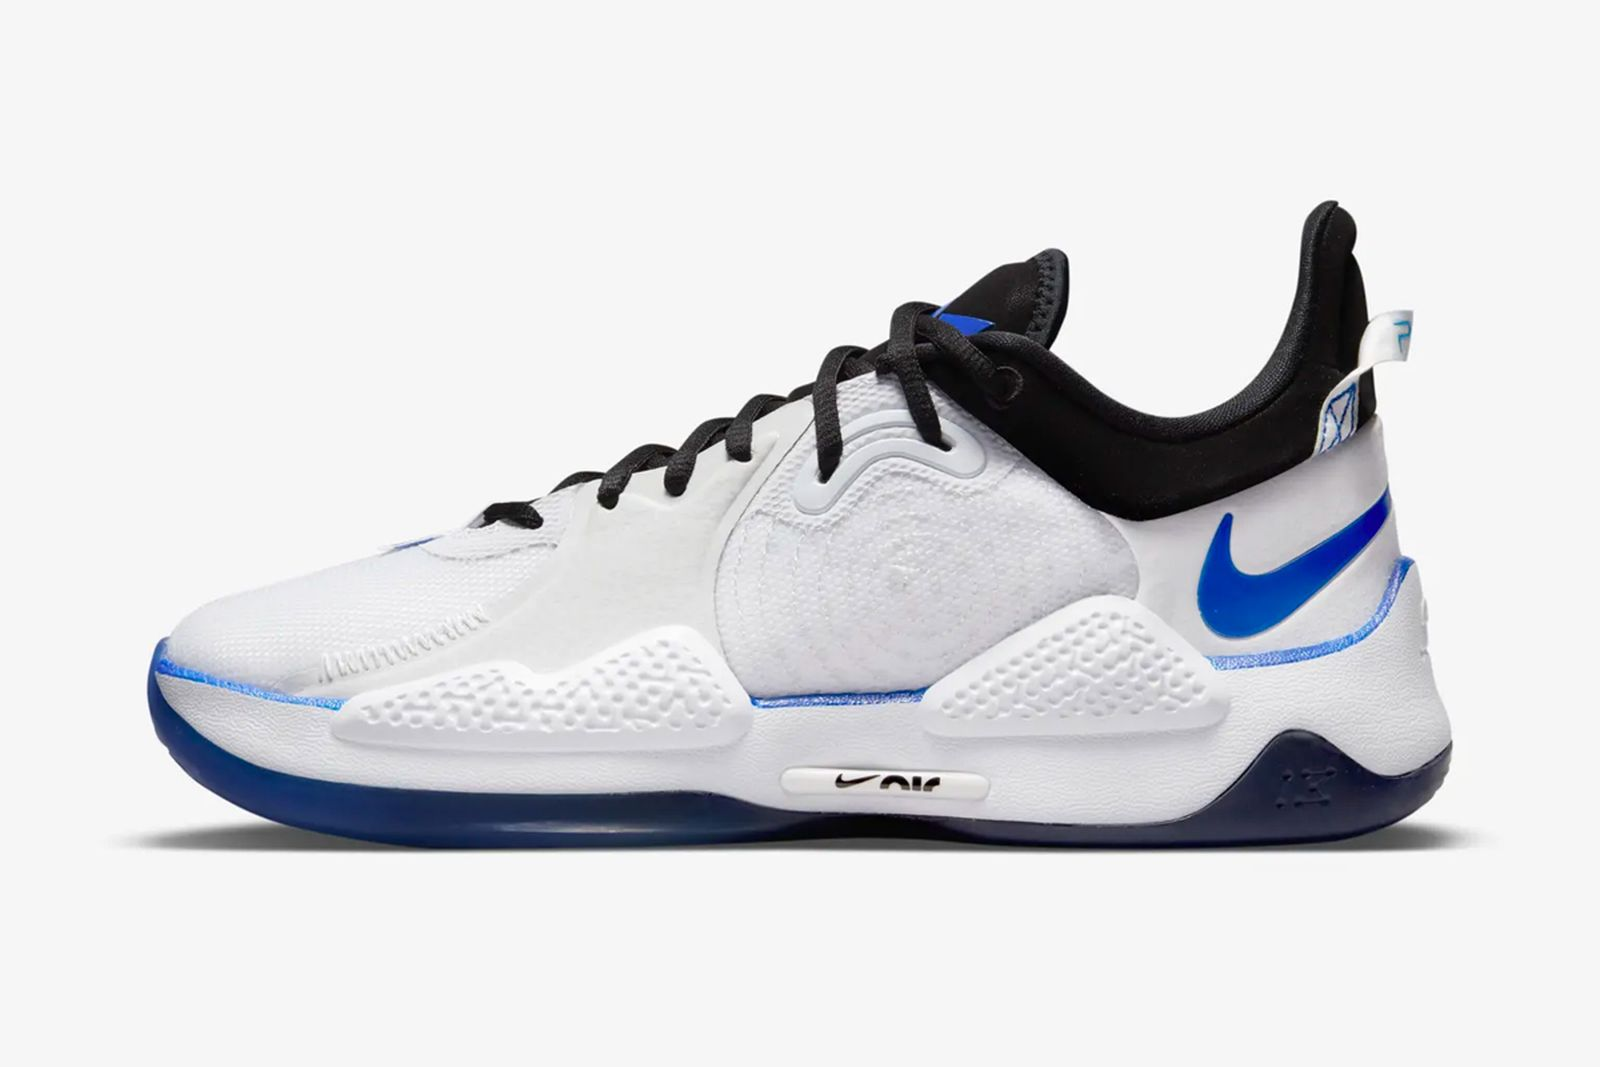 nike-pg-5-playstation-5-release-date-price-02